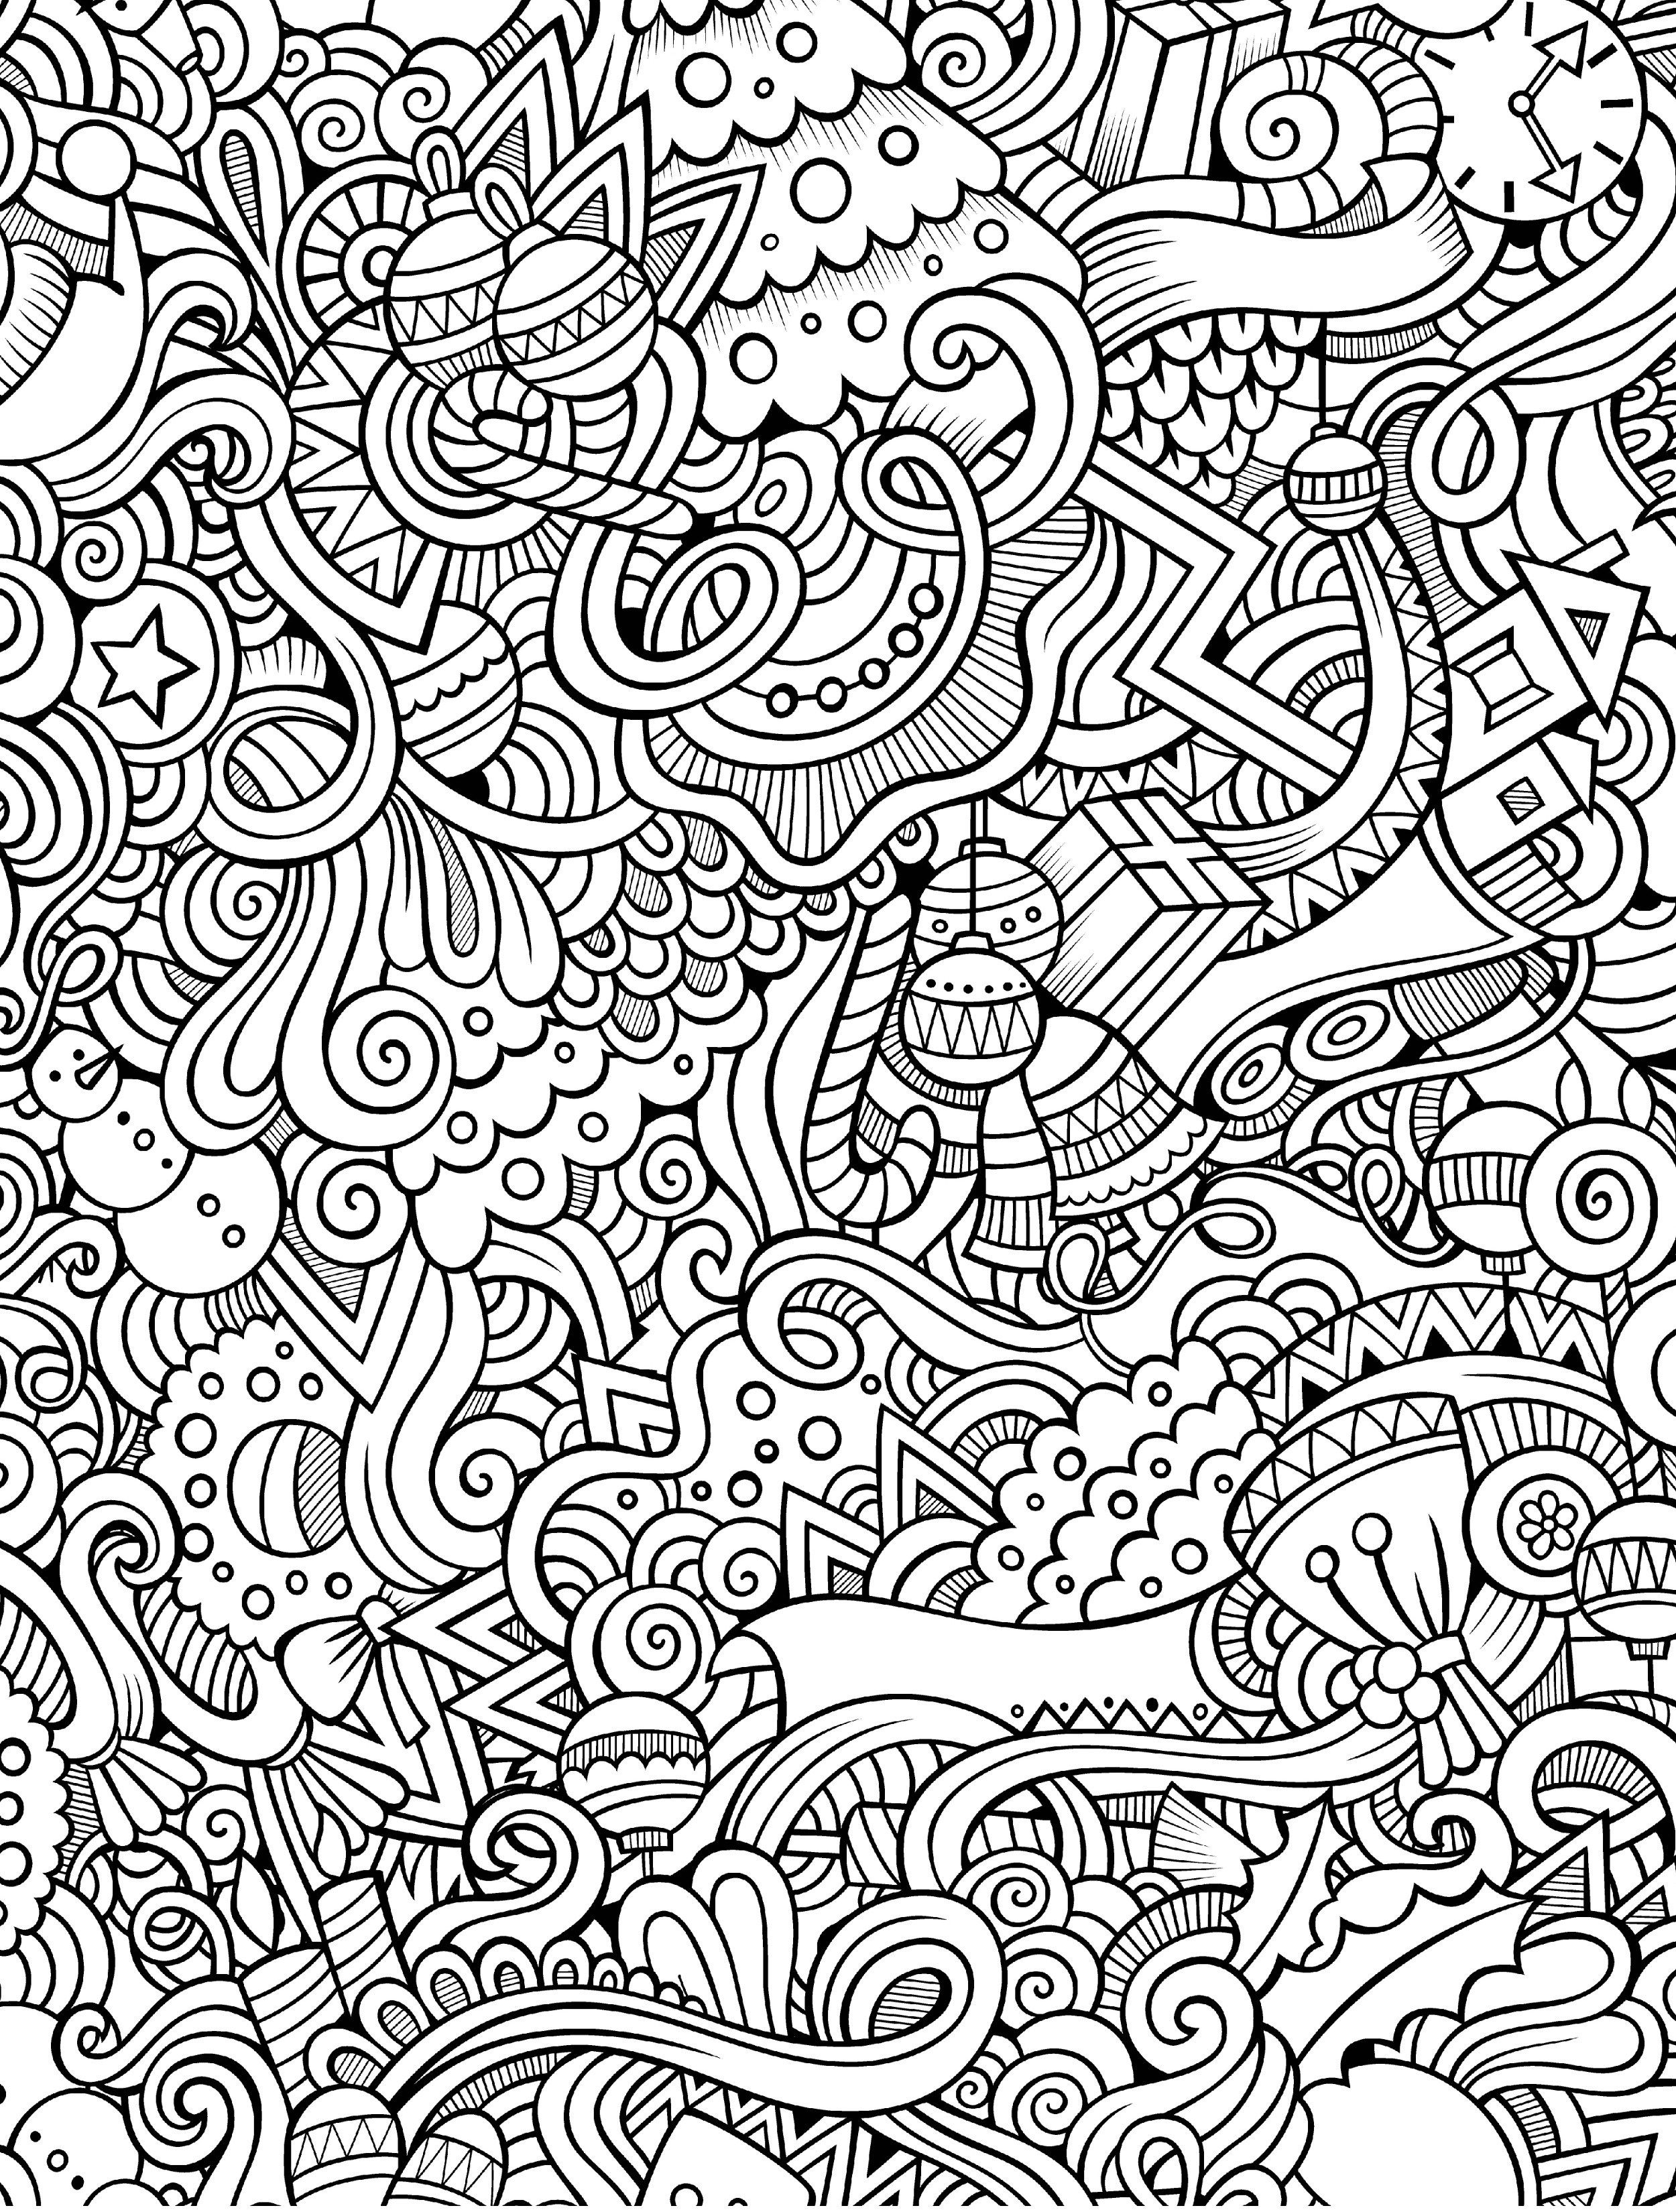 10 Free Printable Holiday Adult Coloring Pages | Adult coloring ...